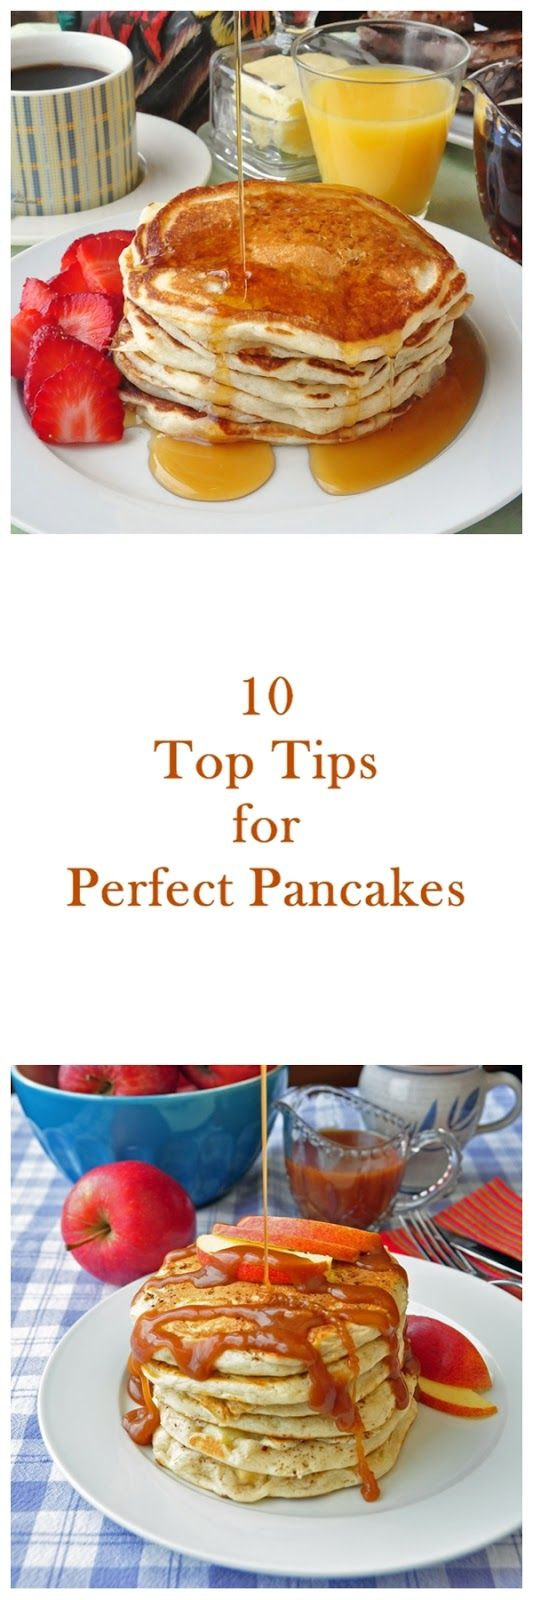 Ten Top Tips for Perfect Pancakes - 10 essential tips for light fluffy perfect pancakes every time PLUS 9 pancake recipes too!